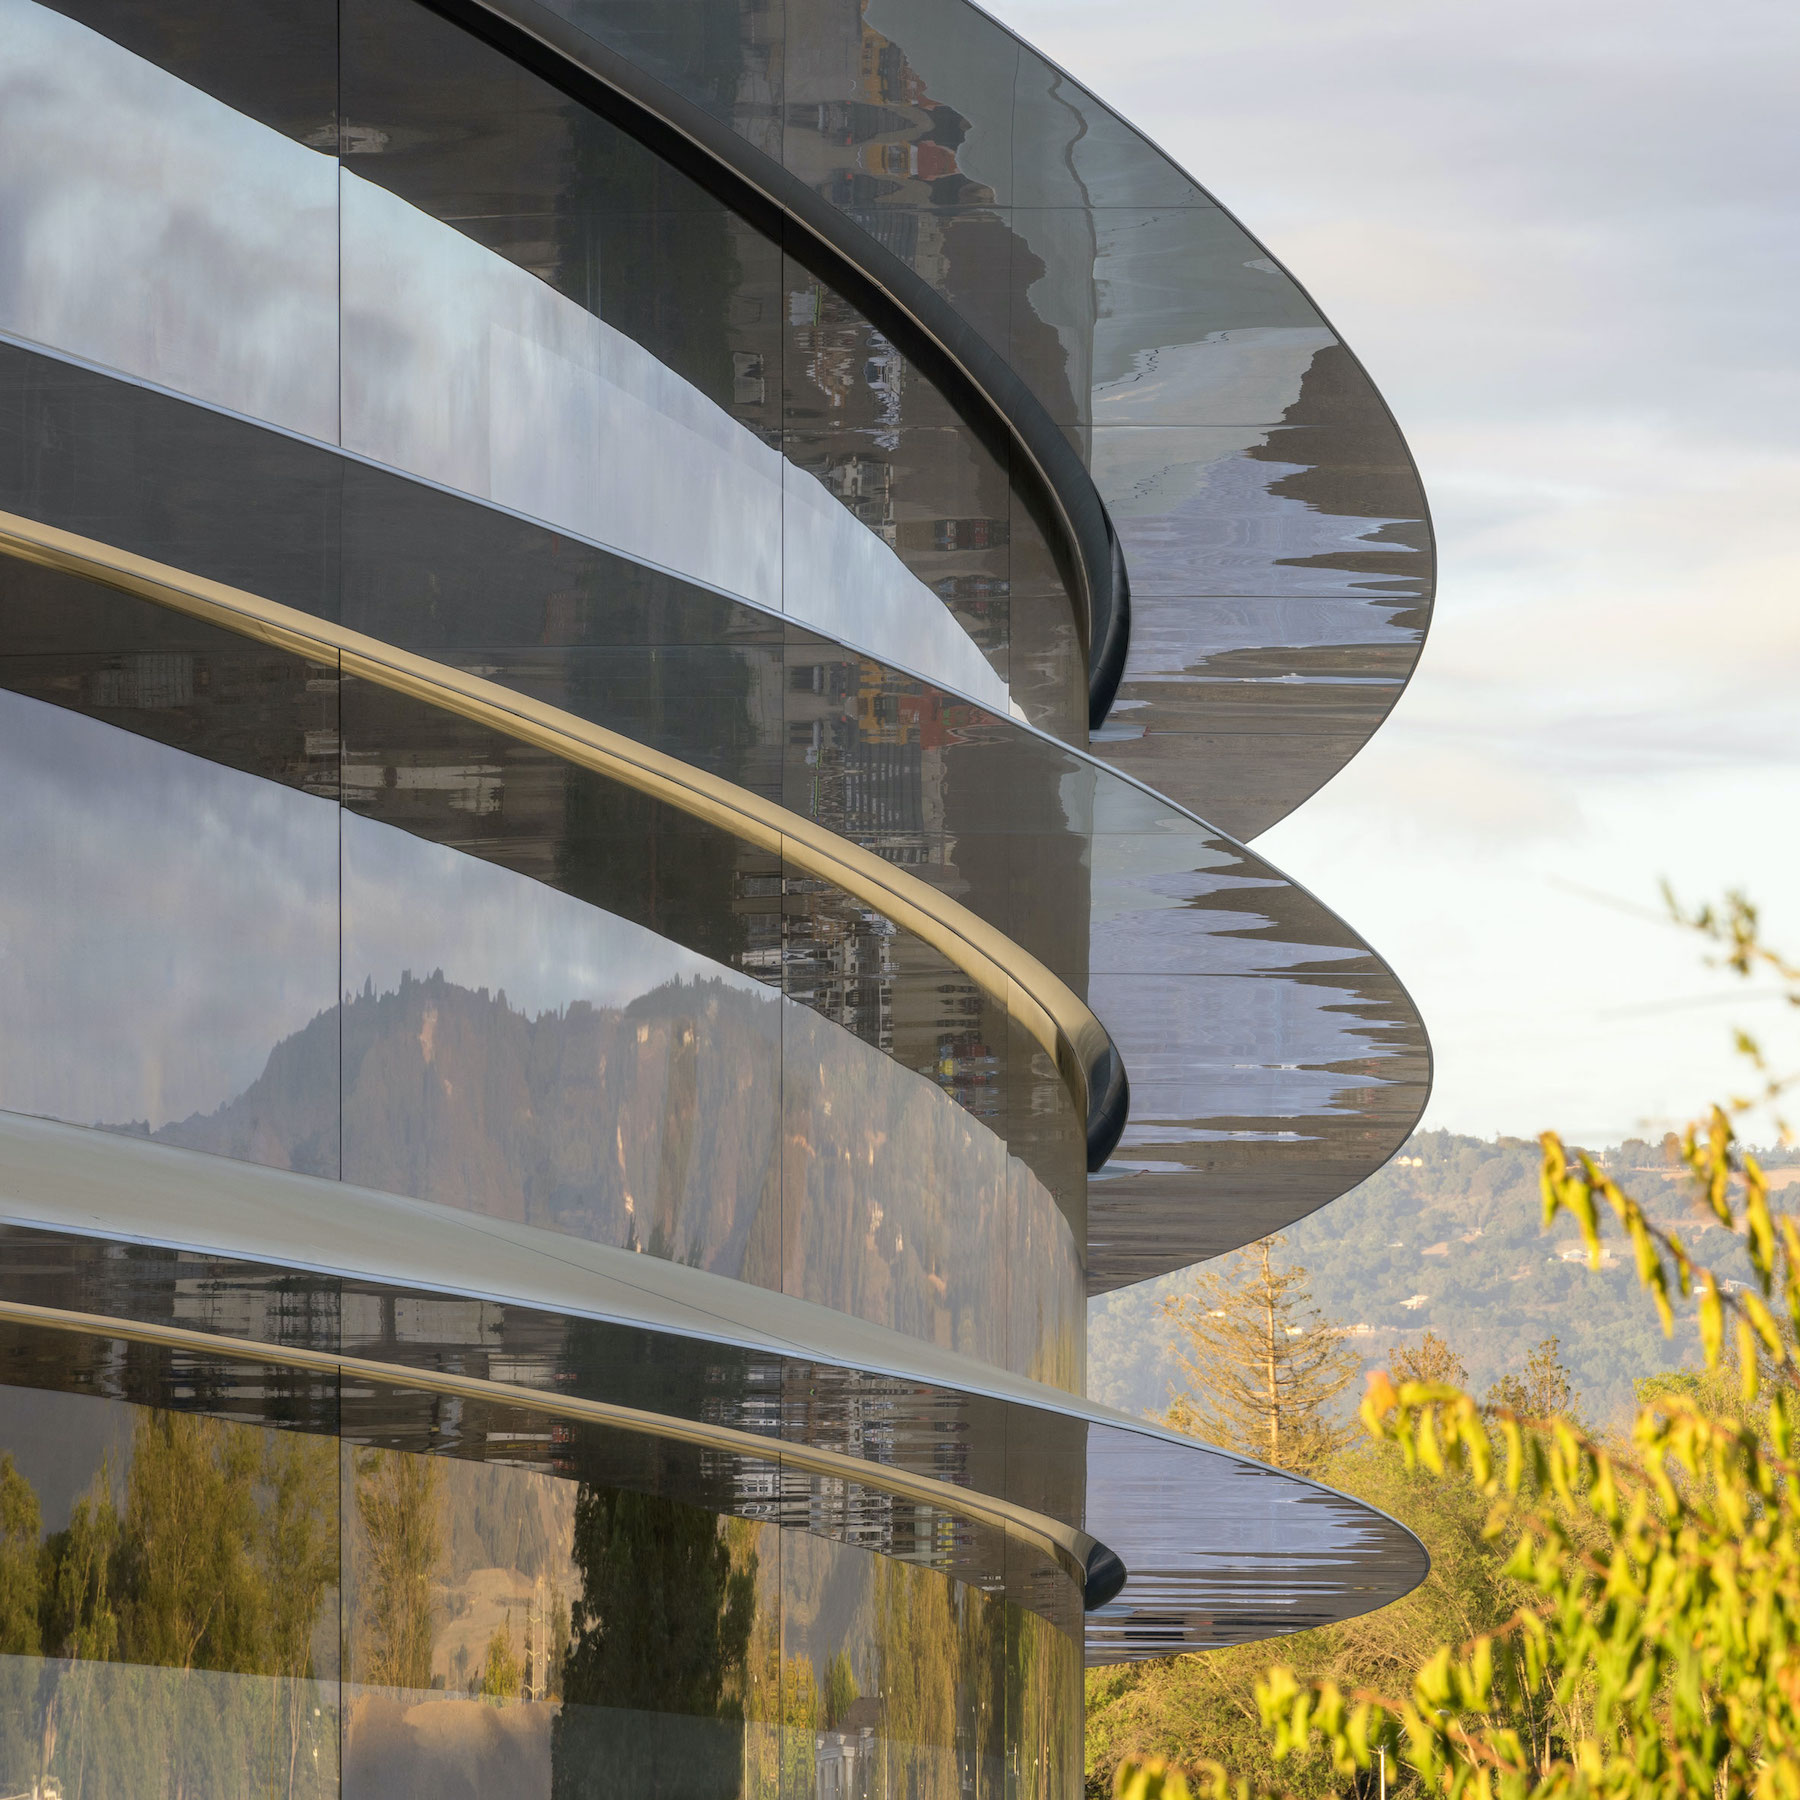 Apple Is Developing a Search Engine, LVMH Acquires Tiffany, and Other News – SURFACE